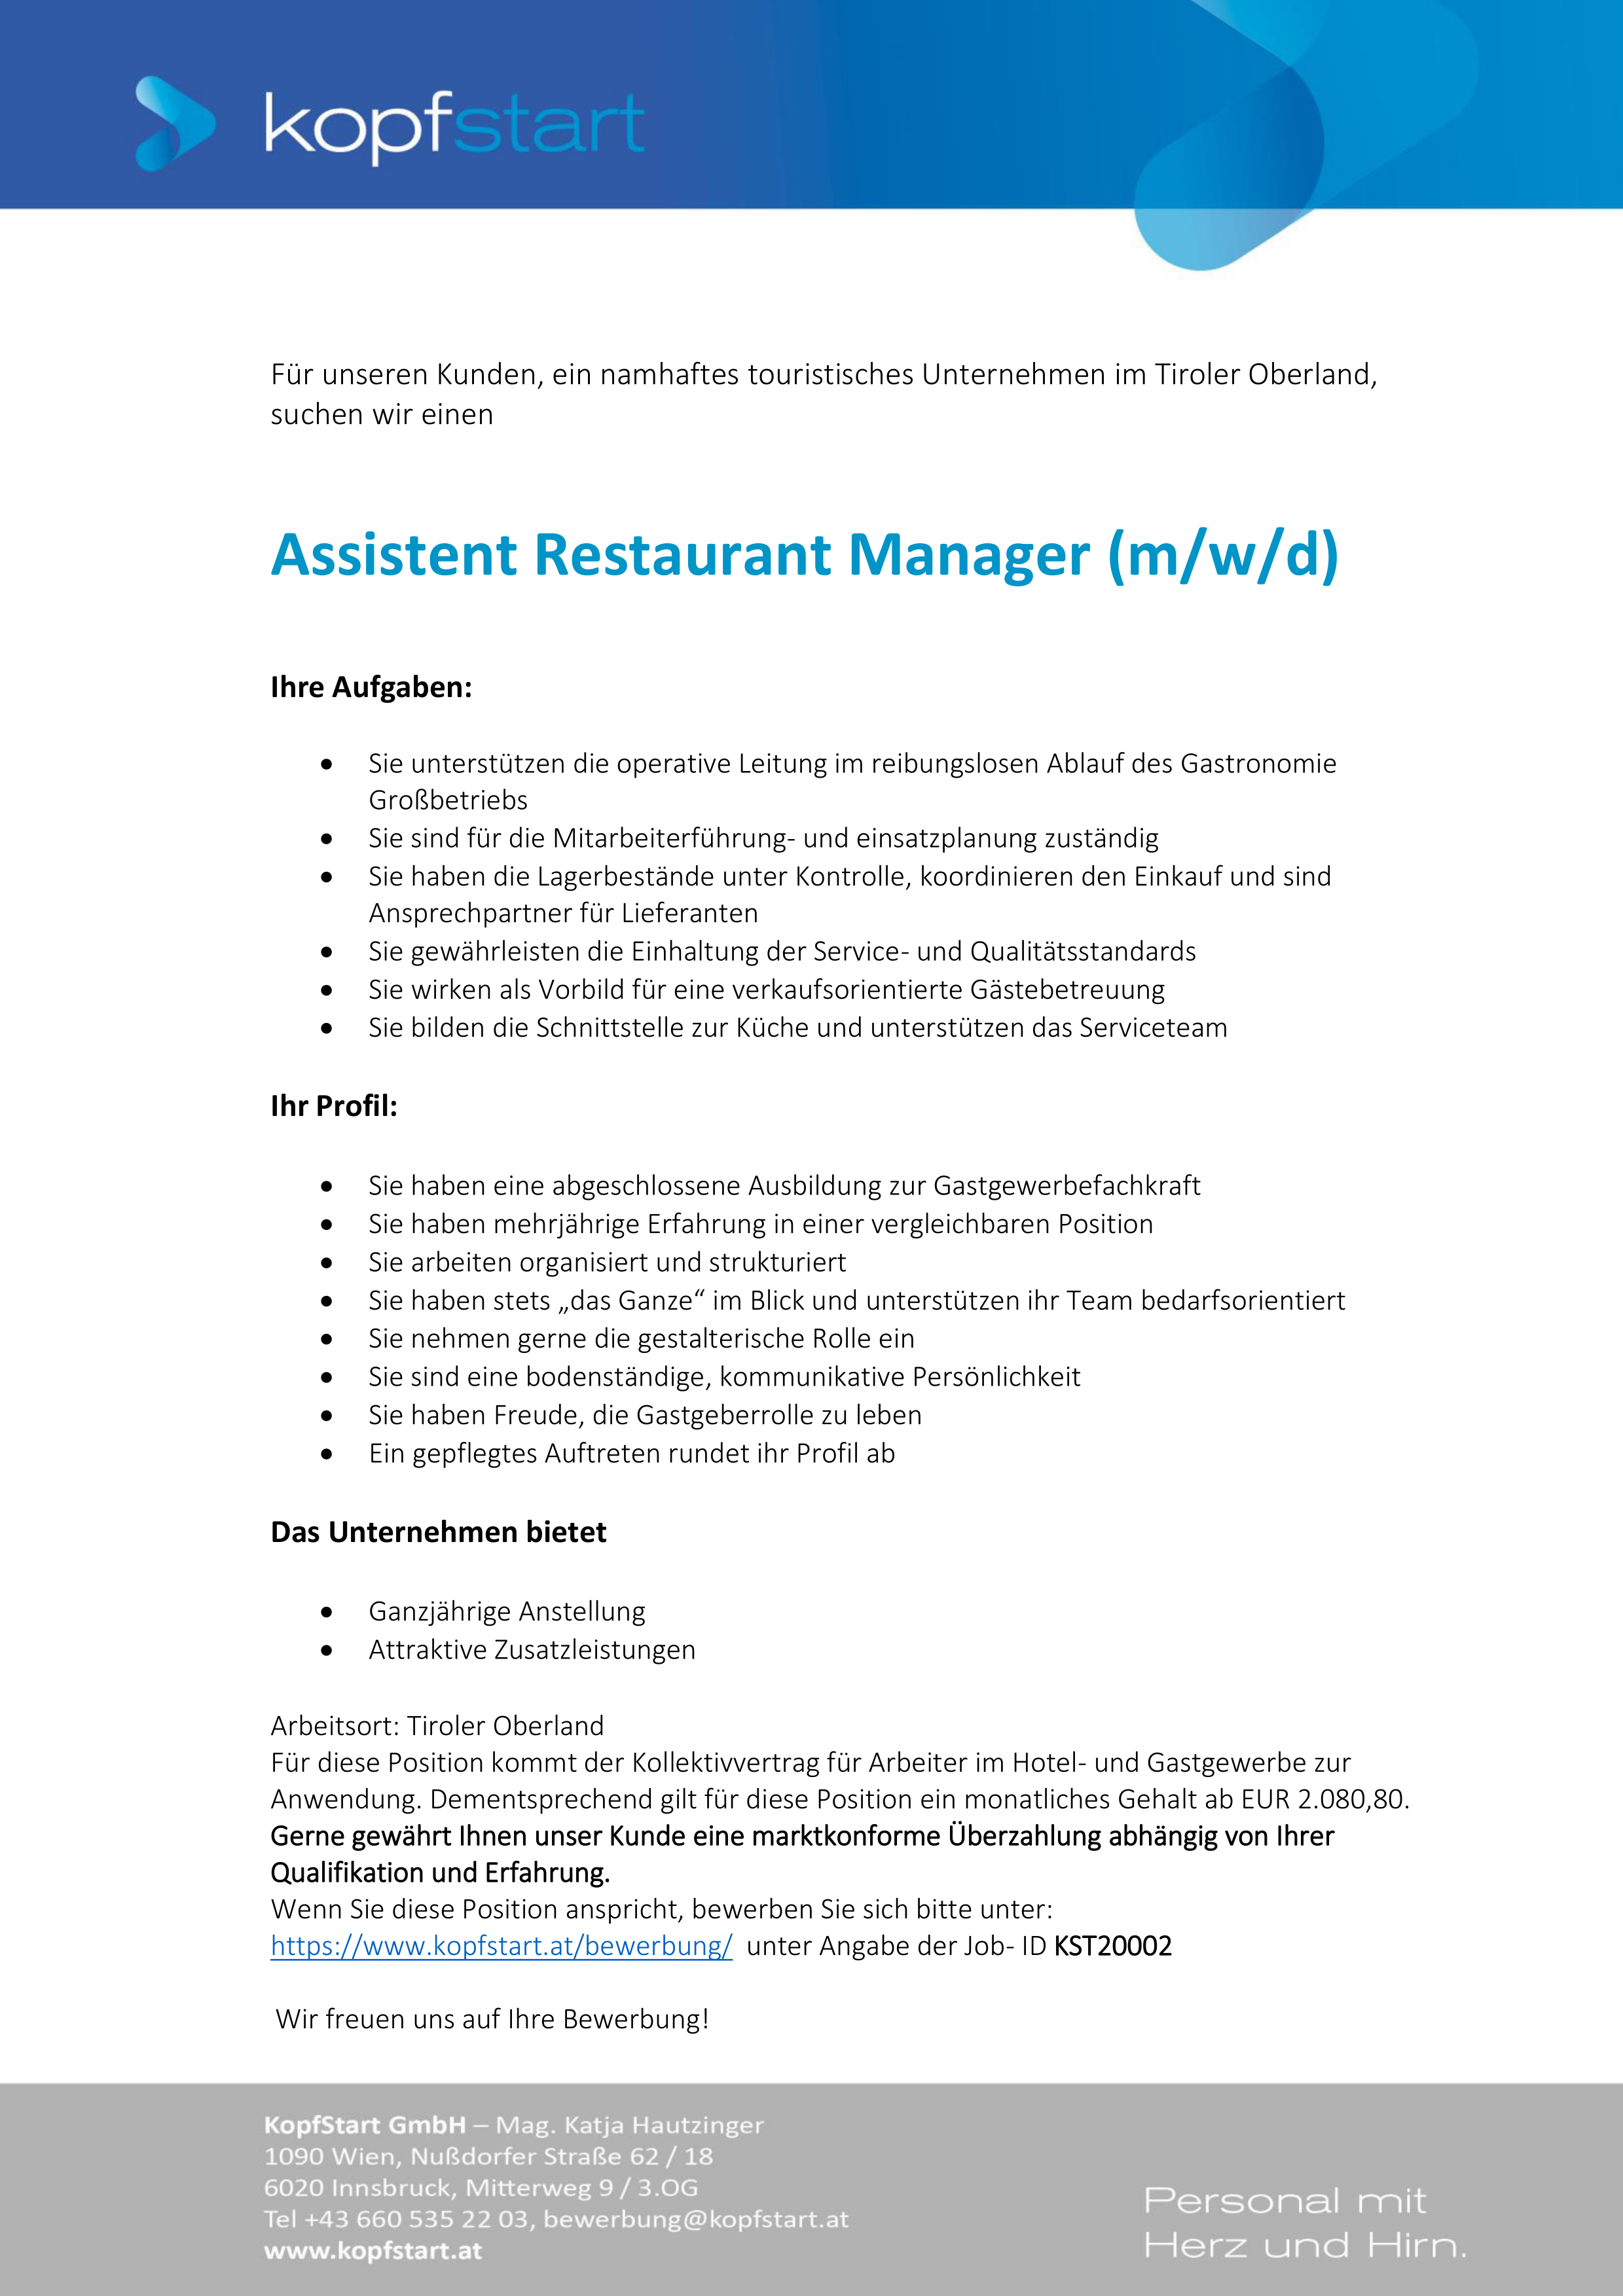 Assistent Restaurant Manager (m/w/d)